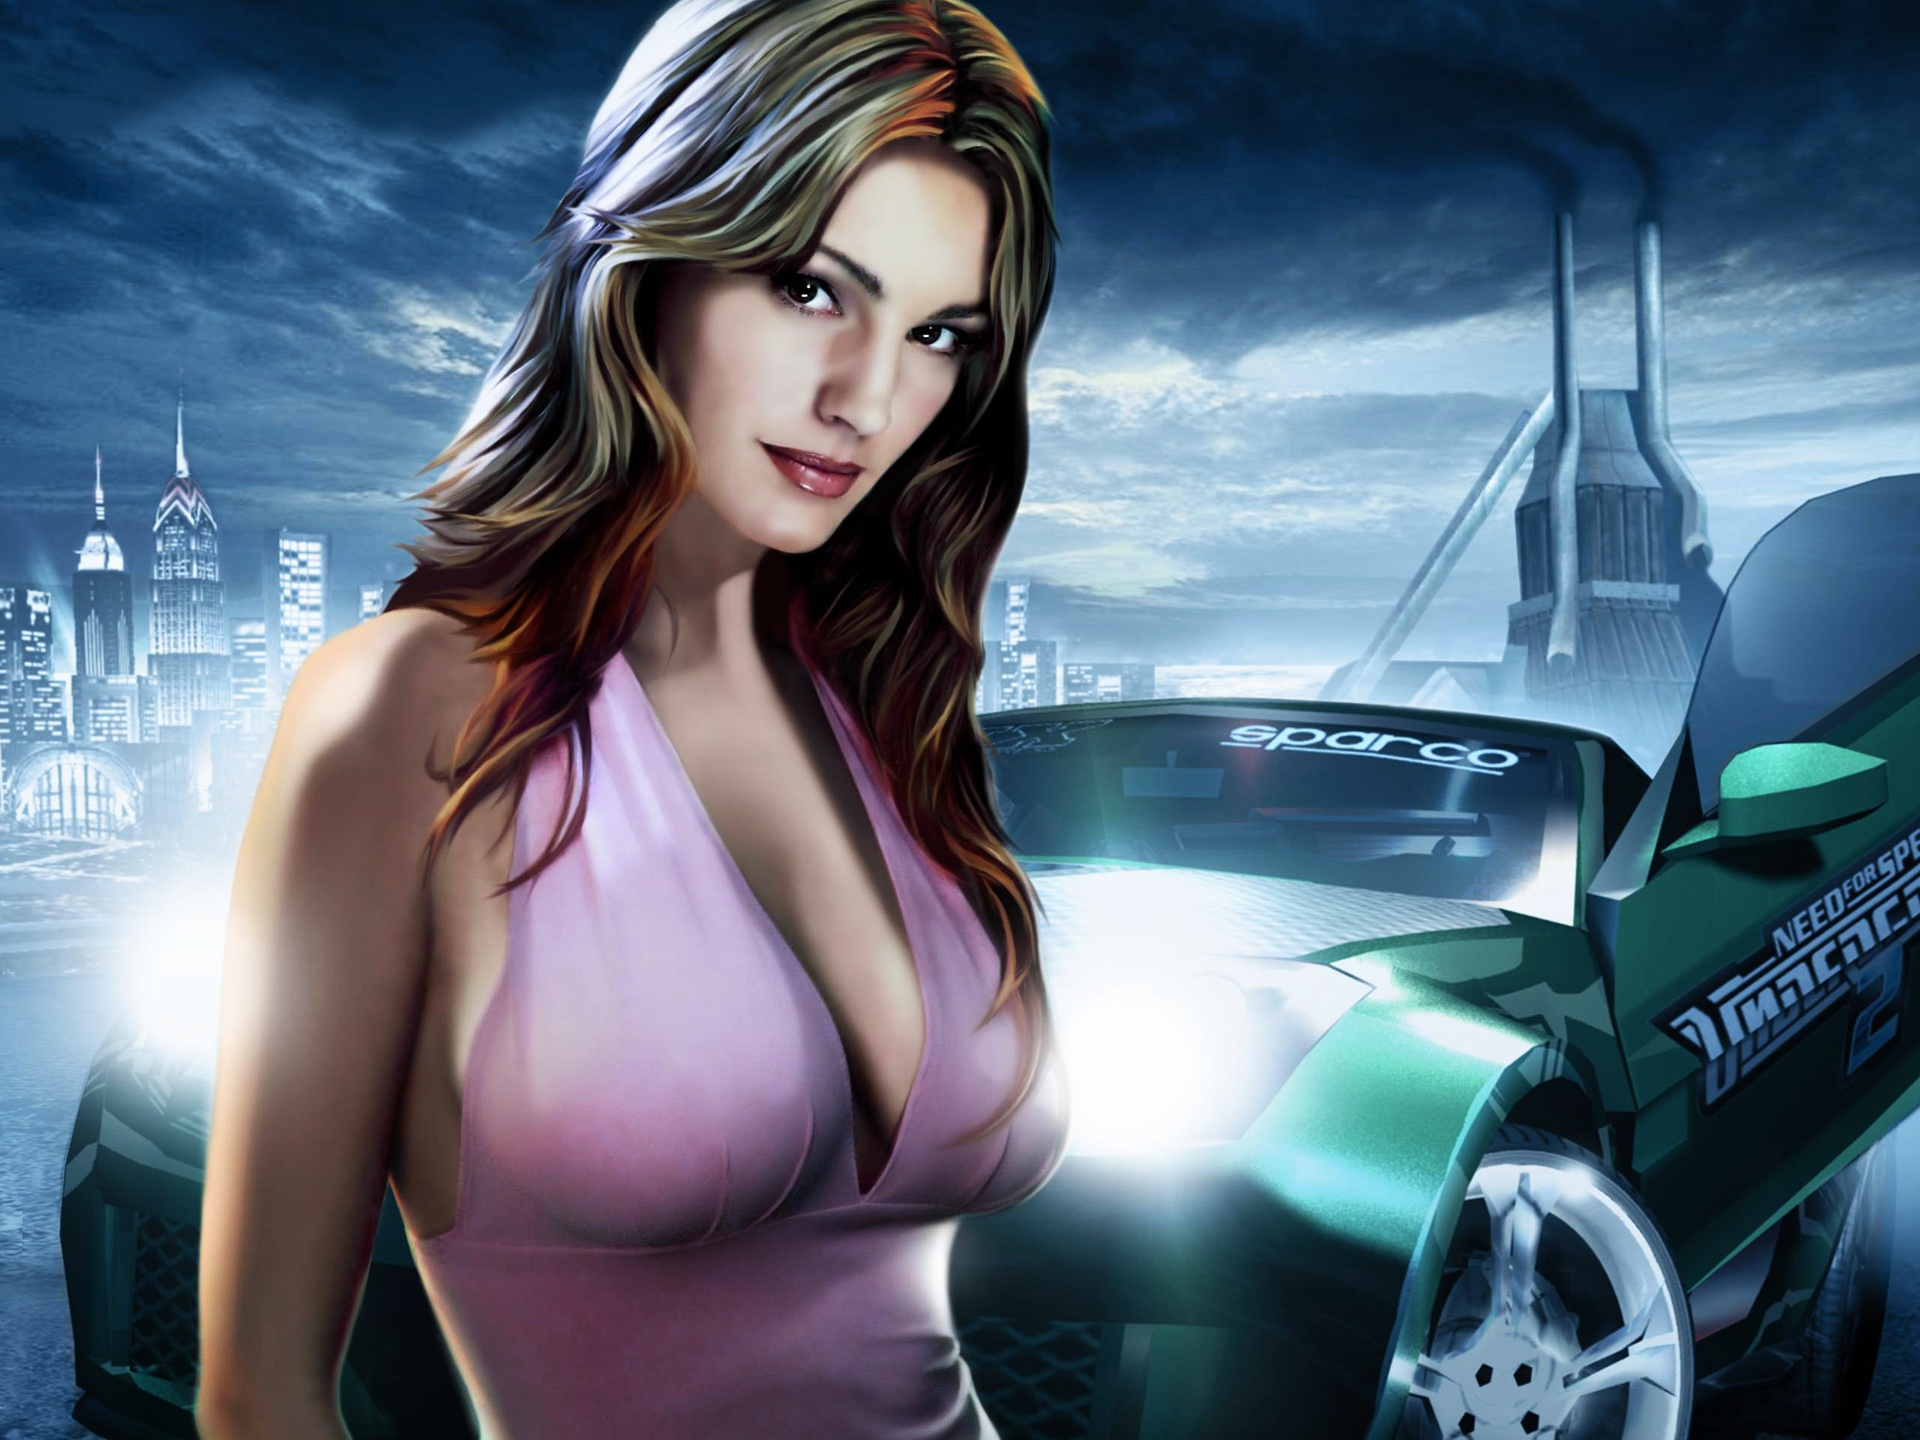 Need For Speed Girl Wallpapers HD Wallpapers 1920x1440